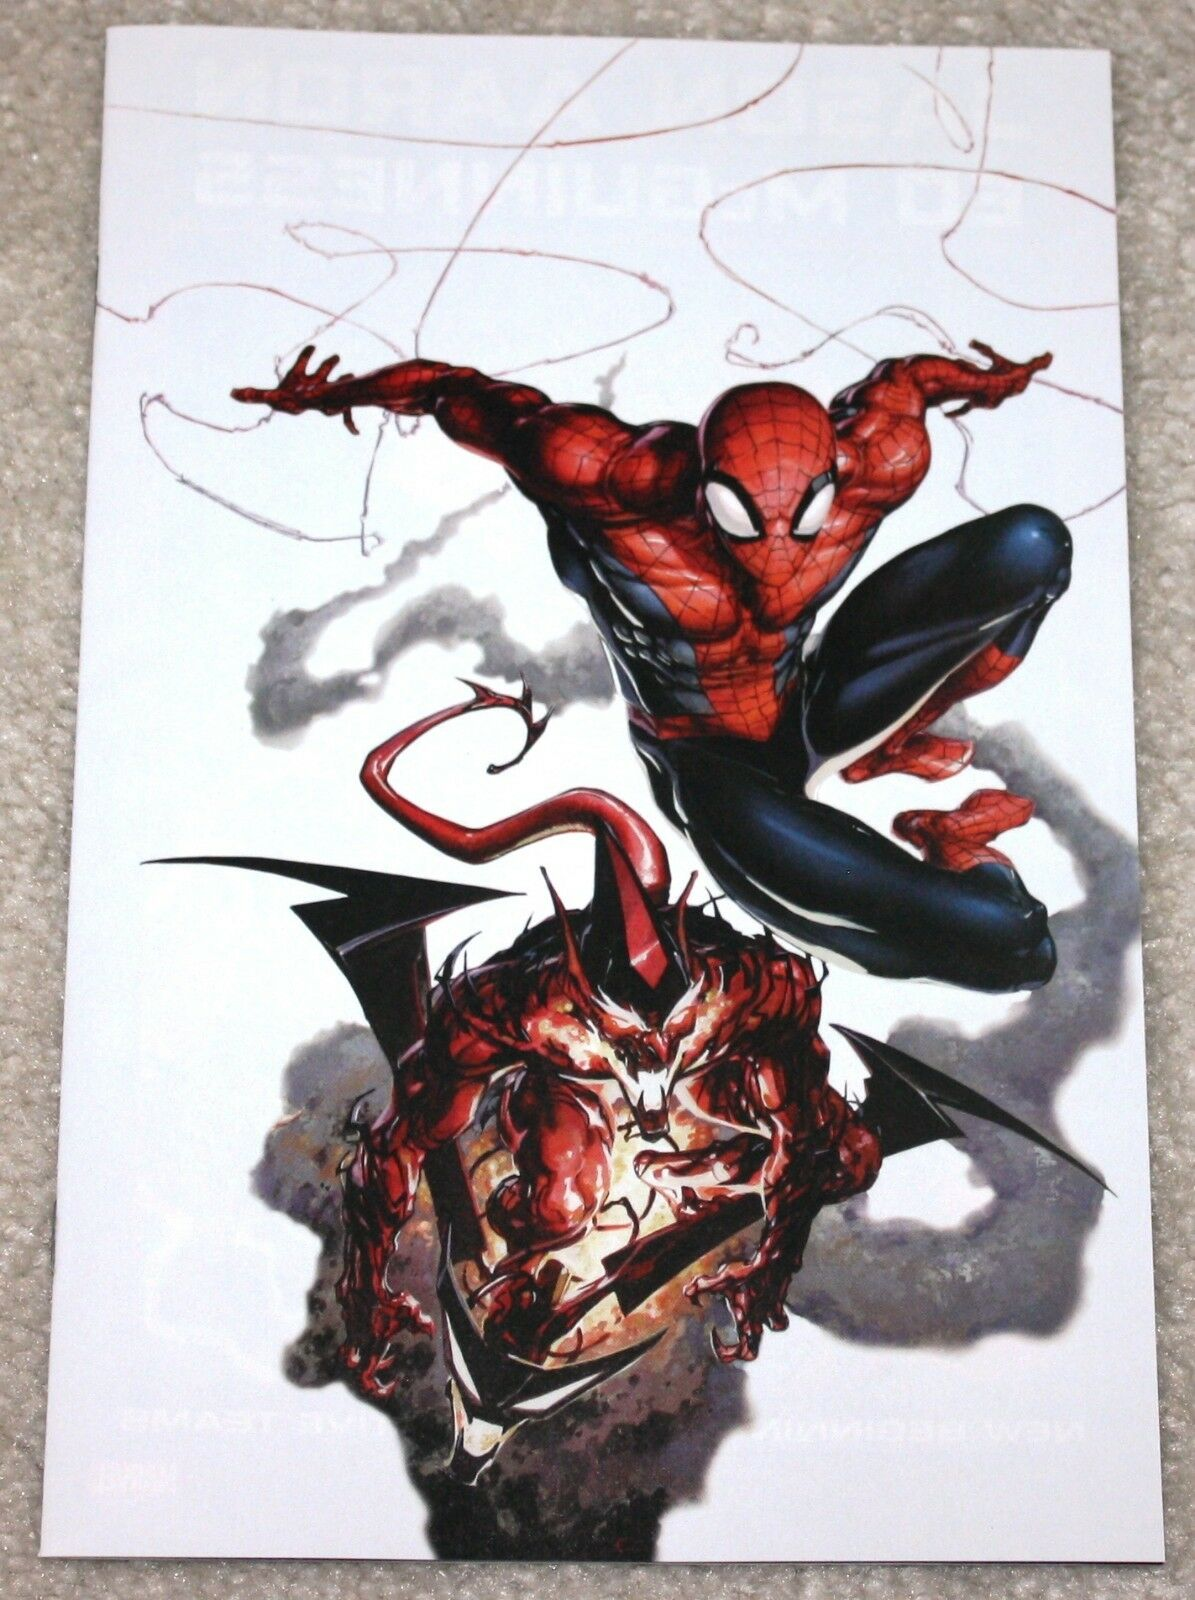 AMAZING SPIDER-MAN #798 CLAYTON CRAIN WHITE VIRGIN EXCLUSIVE VARIANT 1st RED GOBLIN